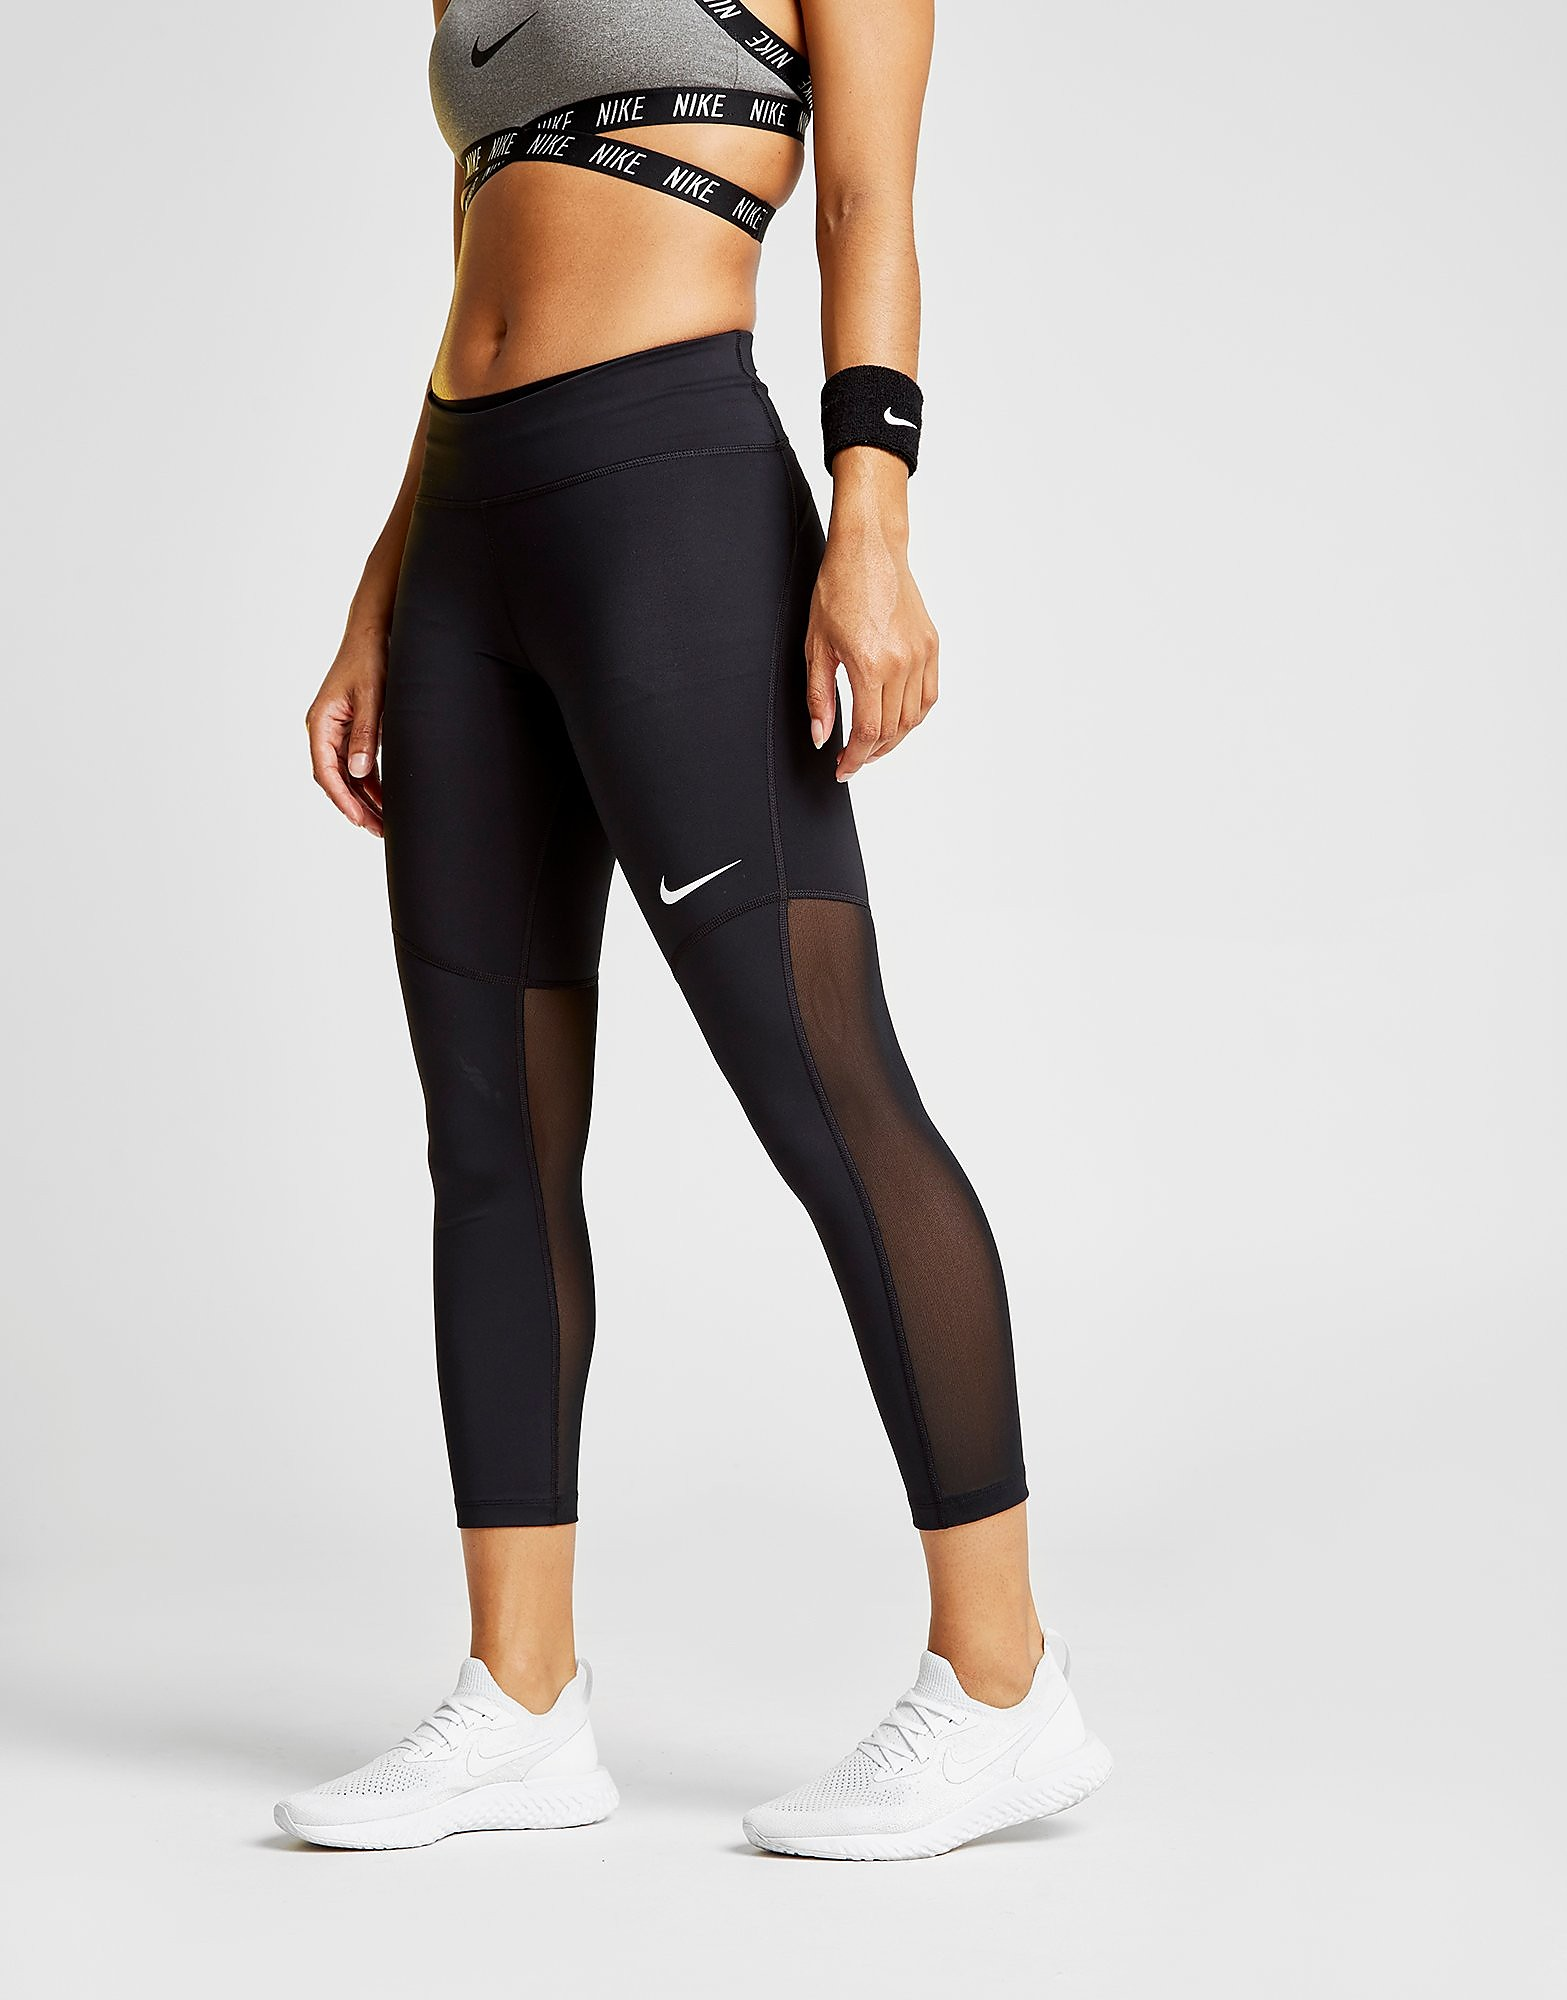 Nike Power Fly Crop Training Tights